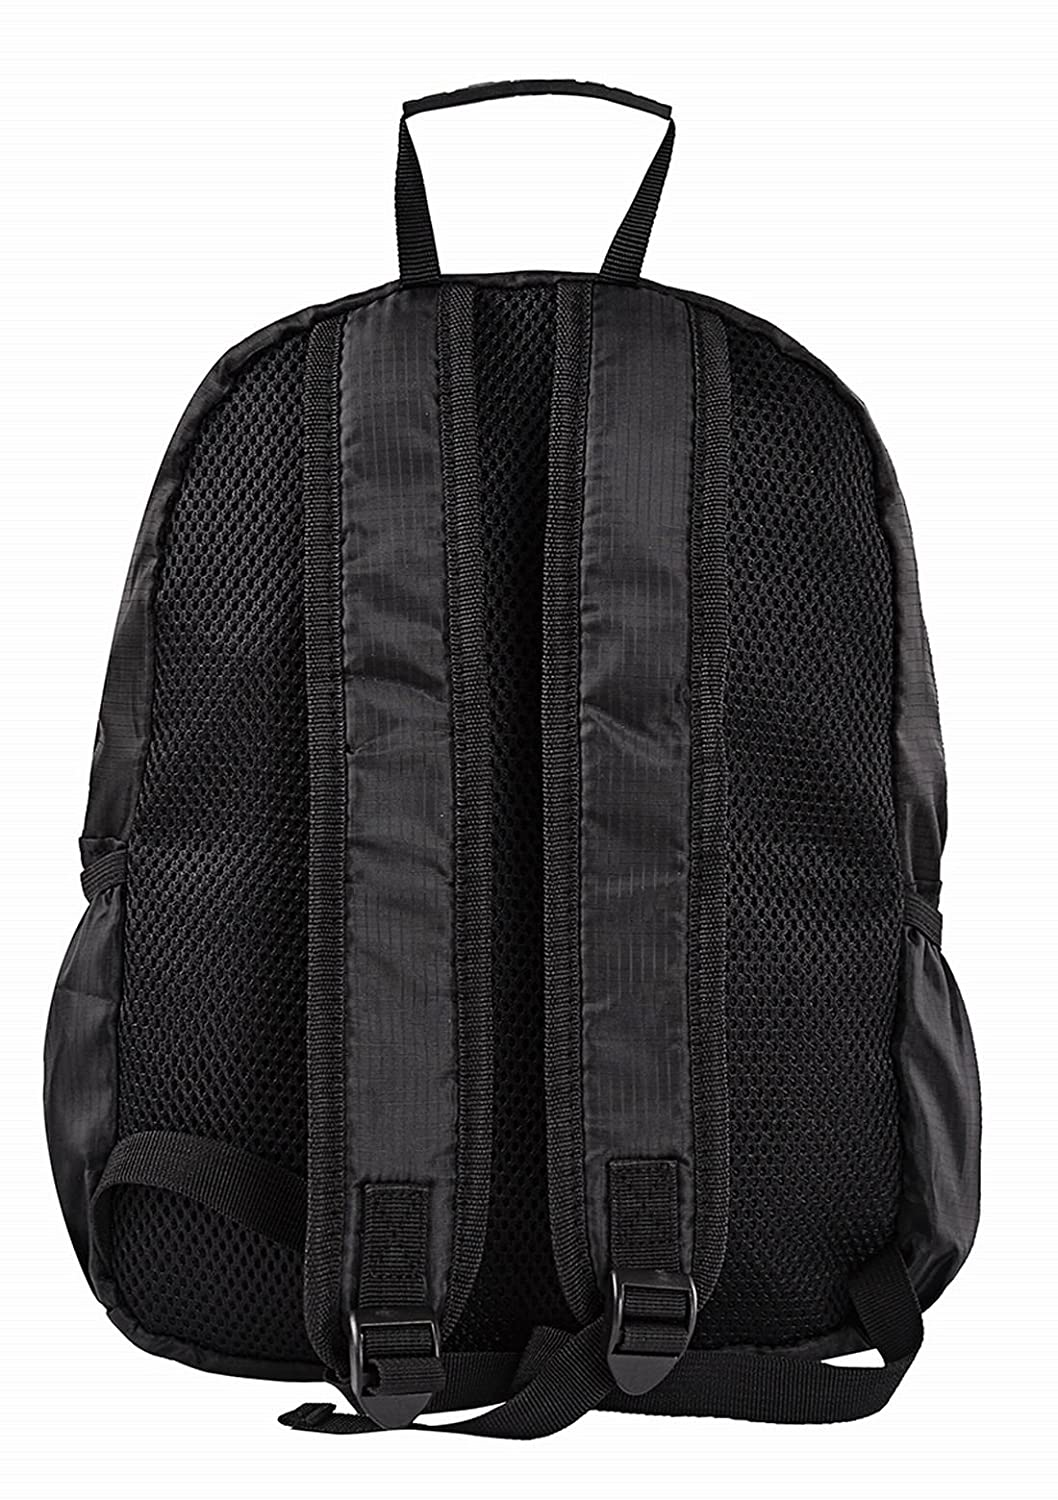 TIBAG 30L//35L Water Resistant Lightweight Packable Foldable Hiking Camping Daypack Backpack /…